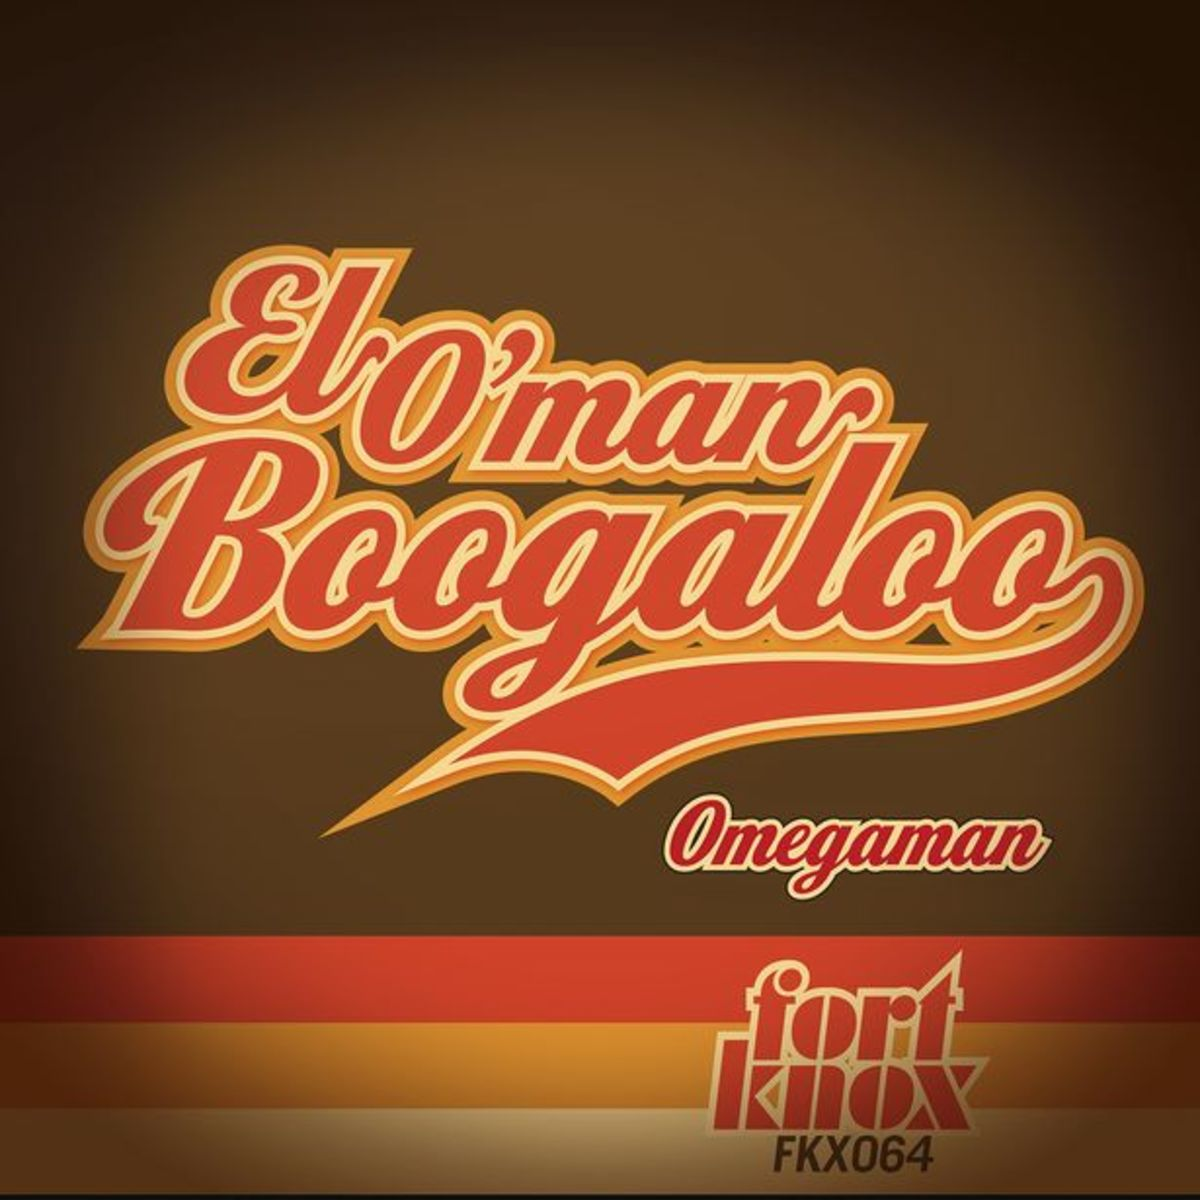 EDM News: Omegaman Releases El O'man Boogalo On Fort Knox Recordings